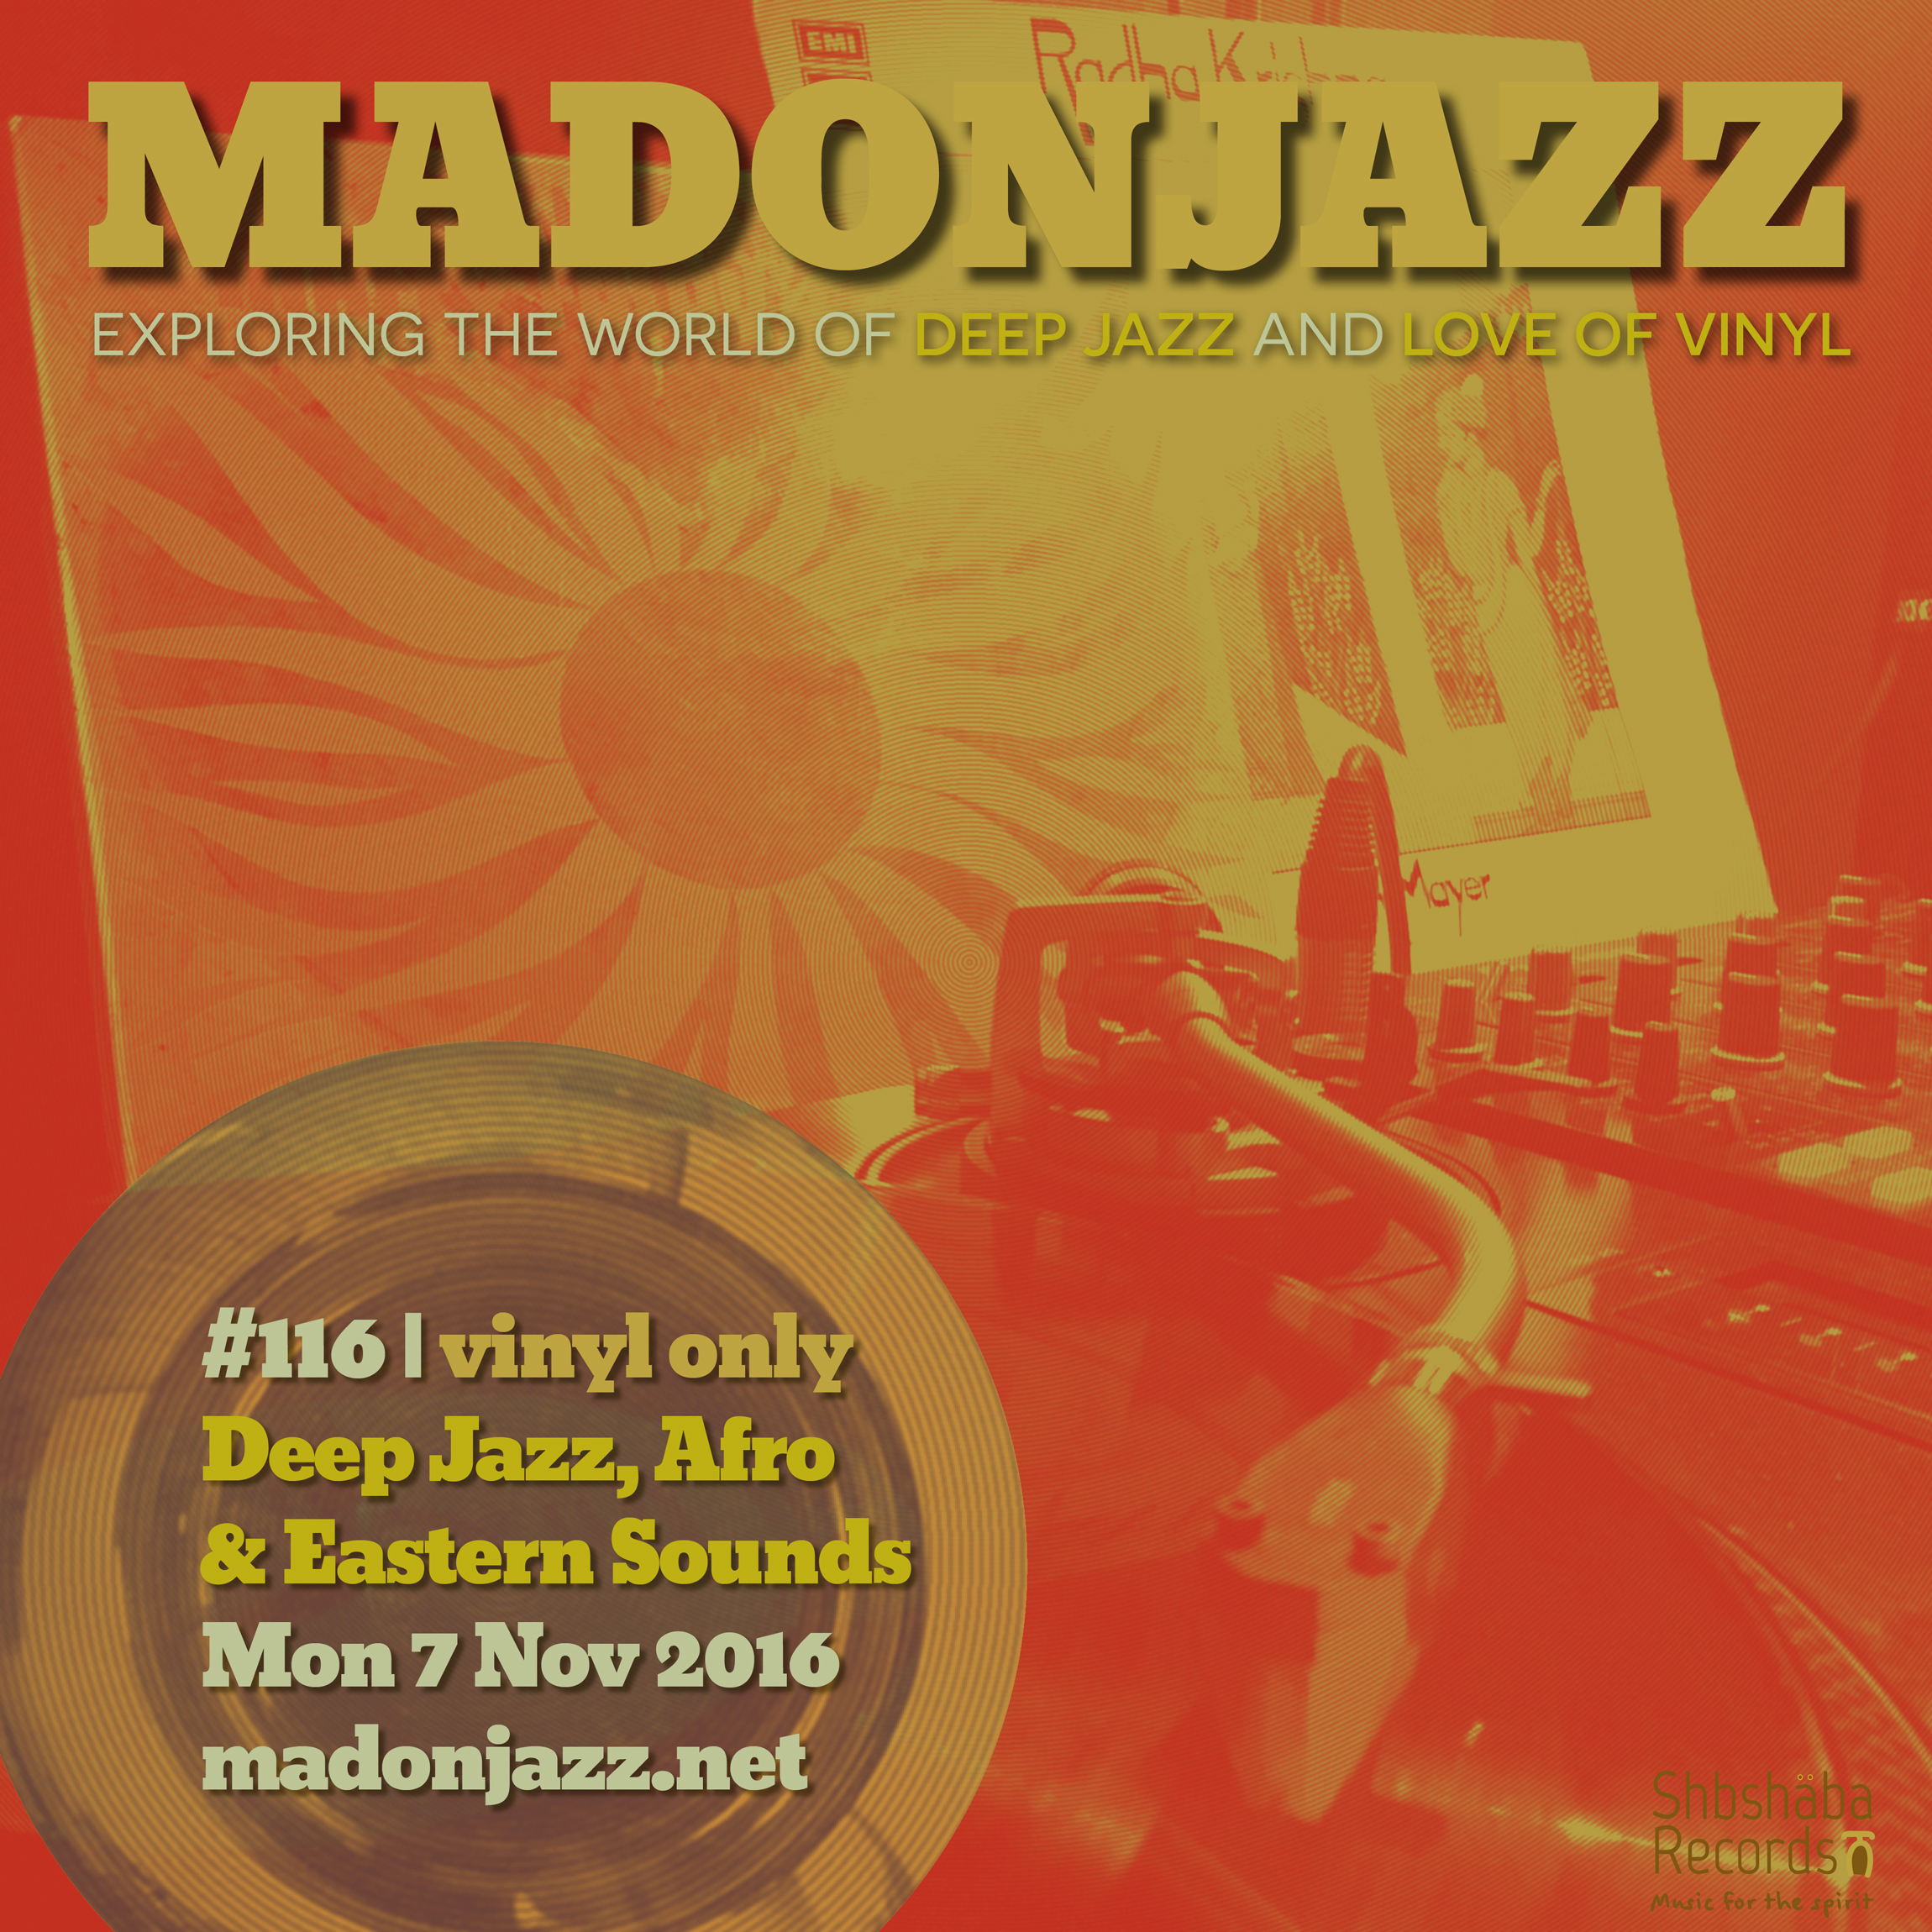 MADONJAZZ #116: Deep Jazz , Afro & Eastern Sounds w/ Thea & Mark G.